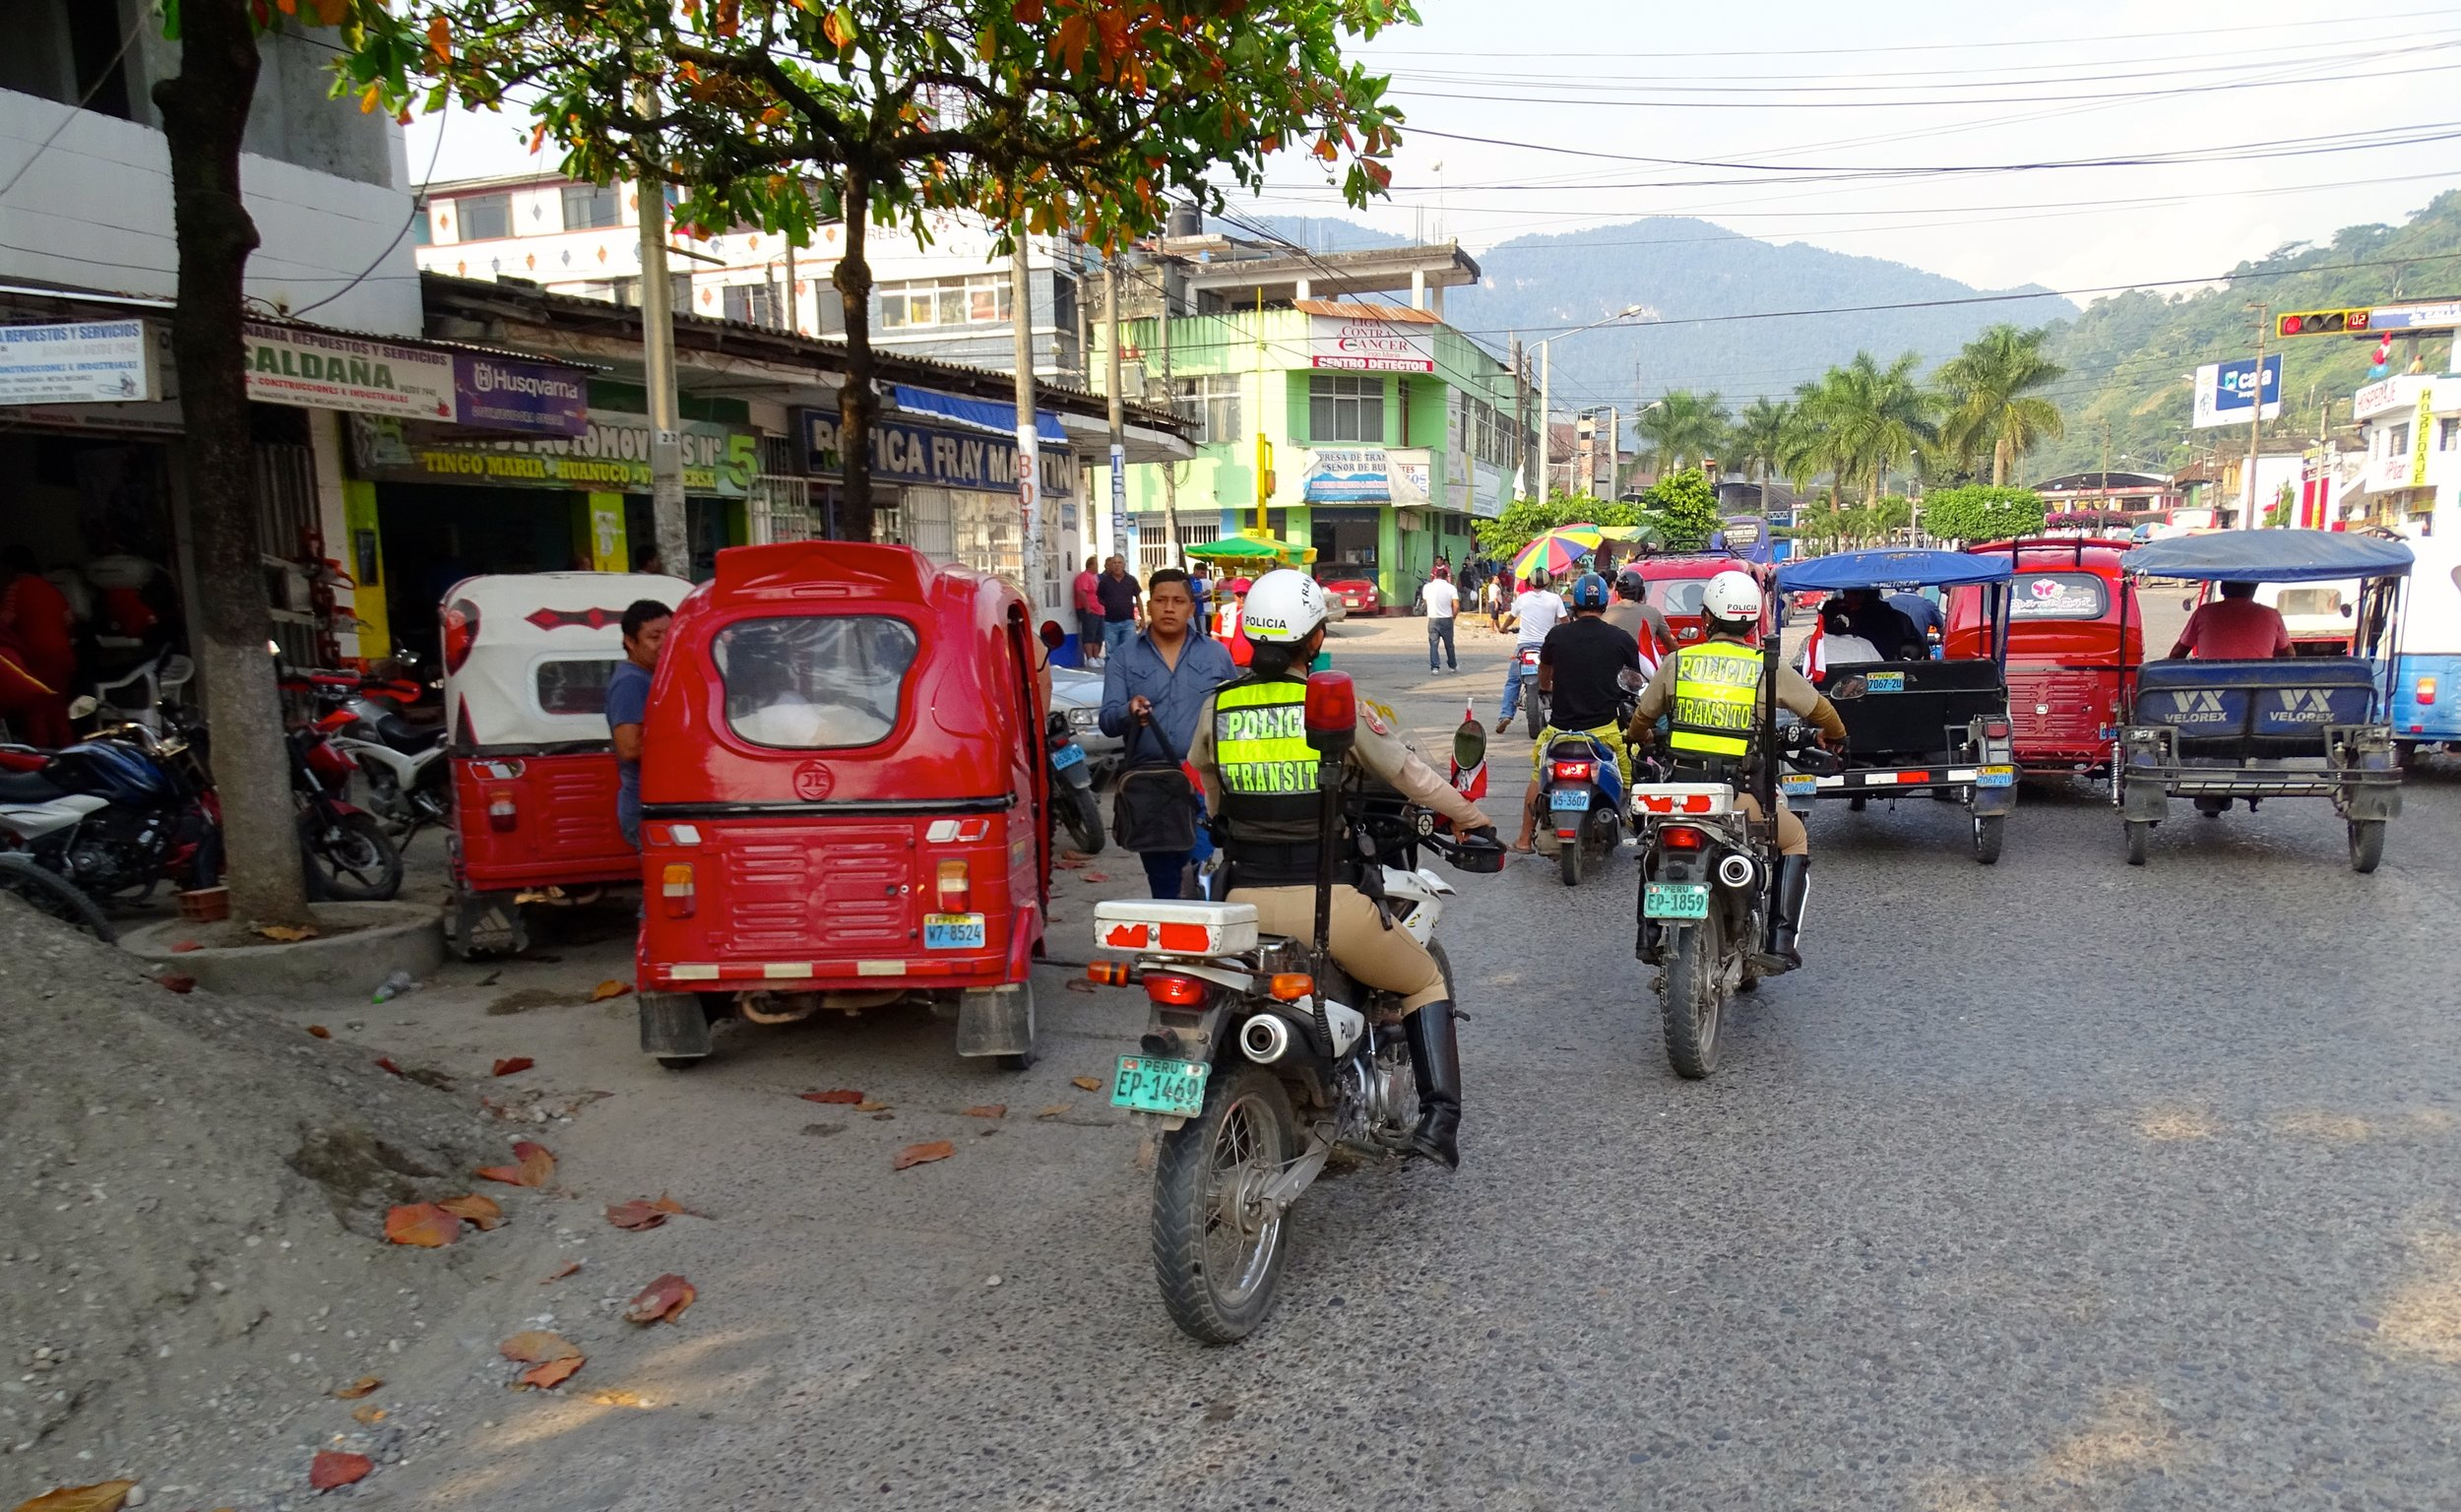 Riding through the small town of Tingo Maria was slightly crazy, as usual.